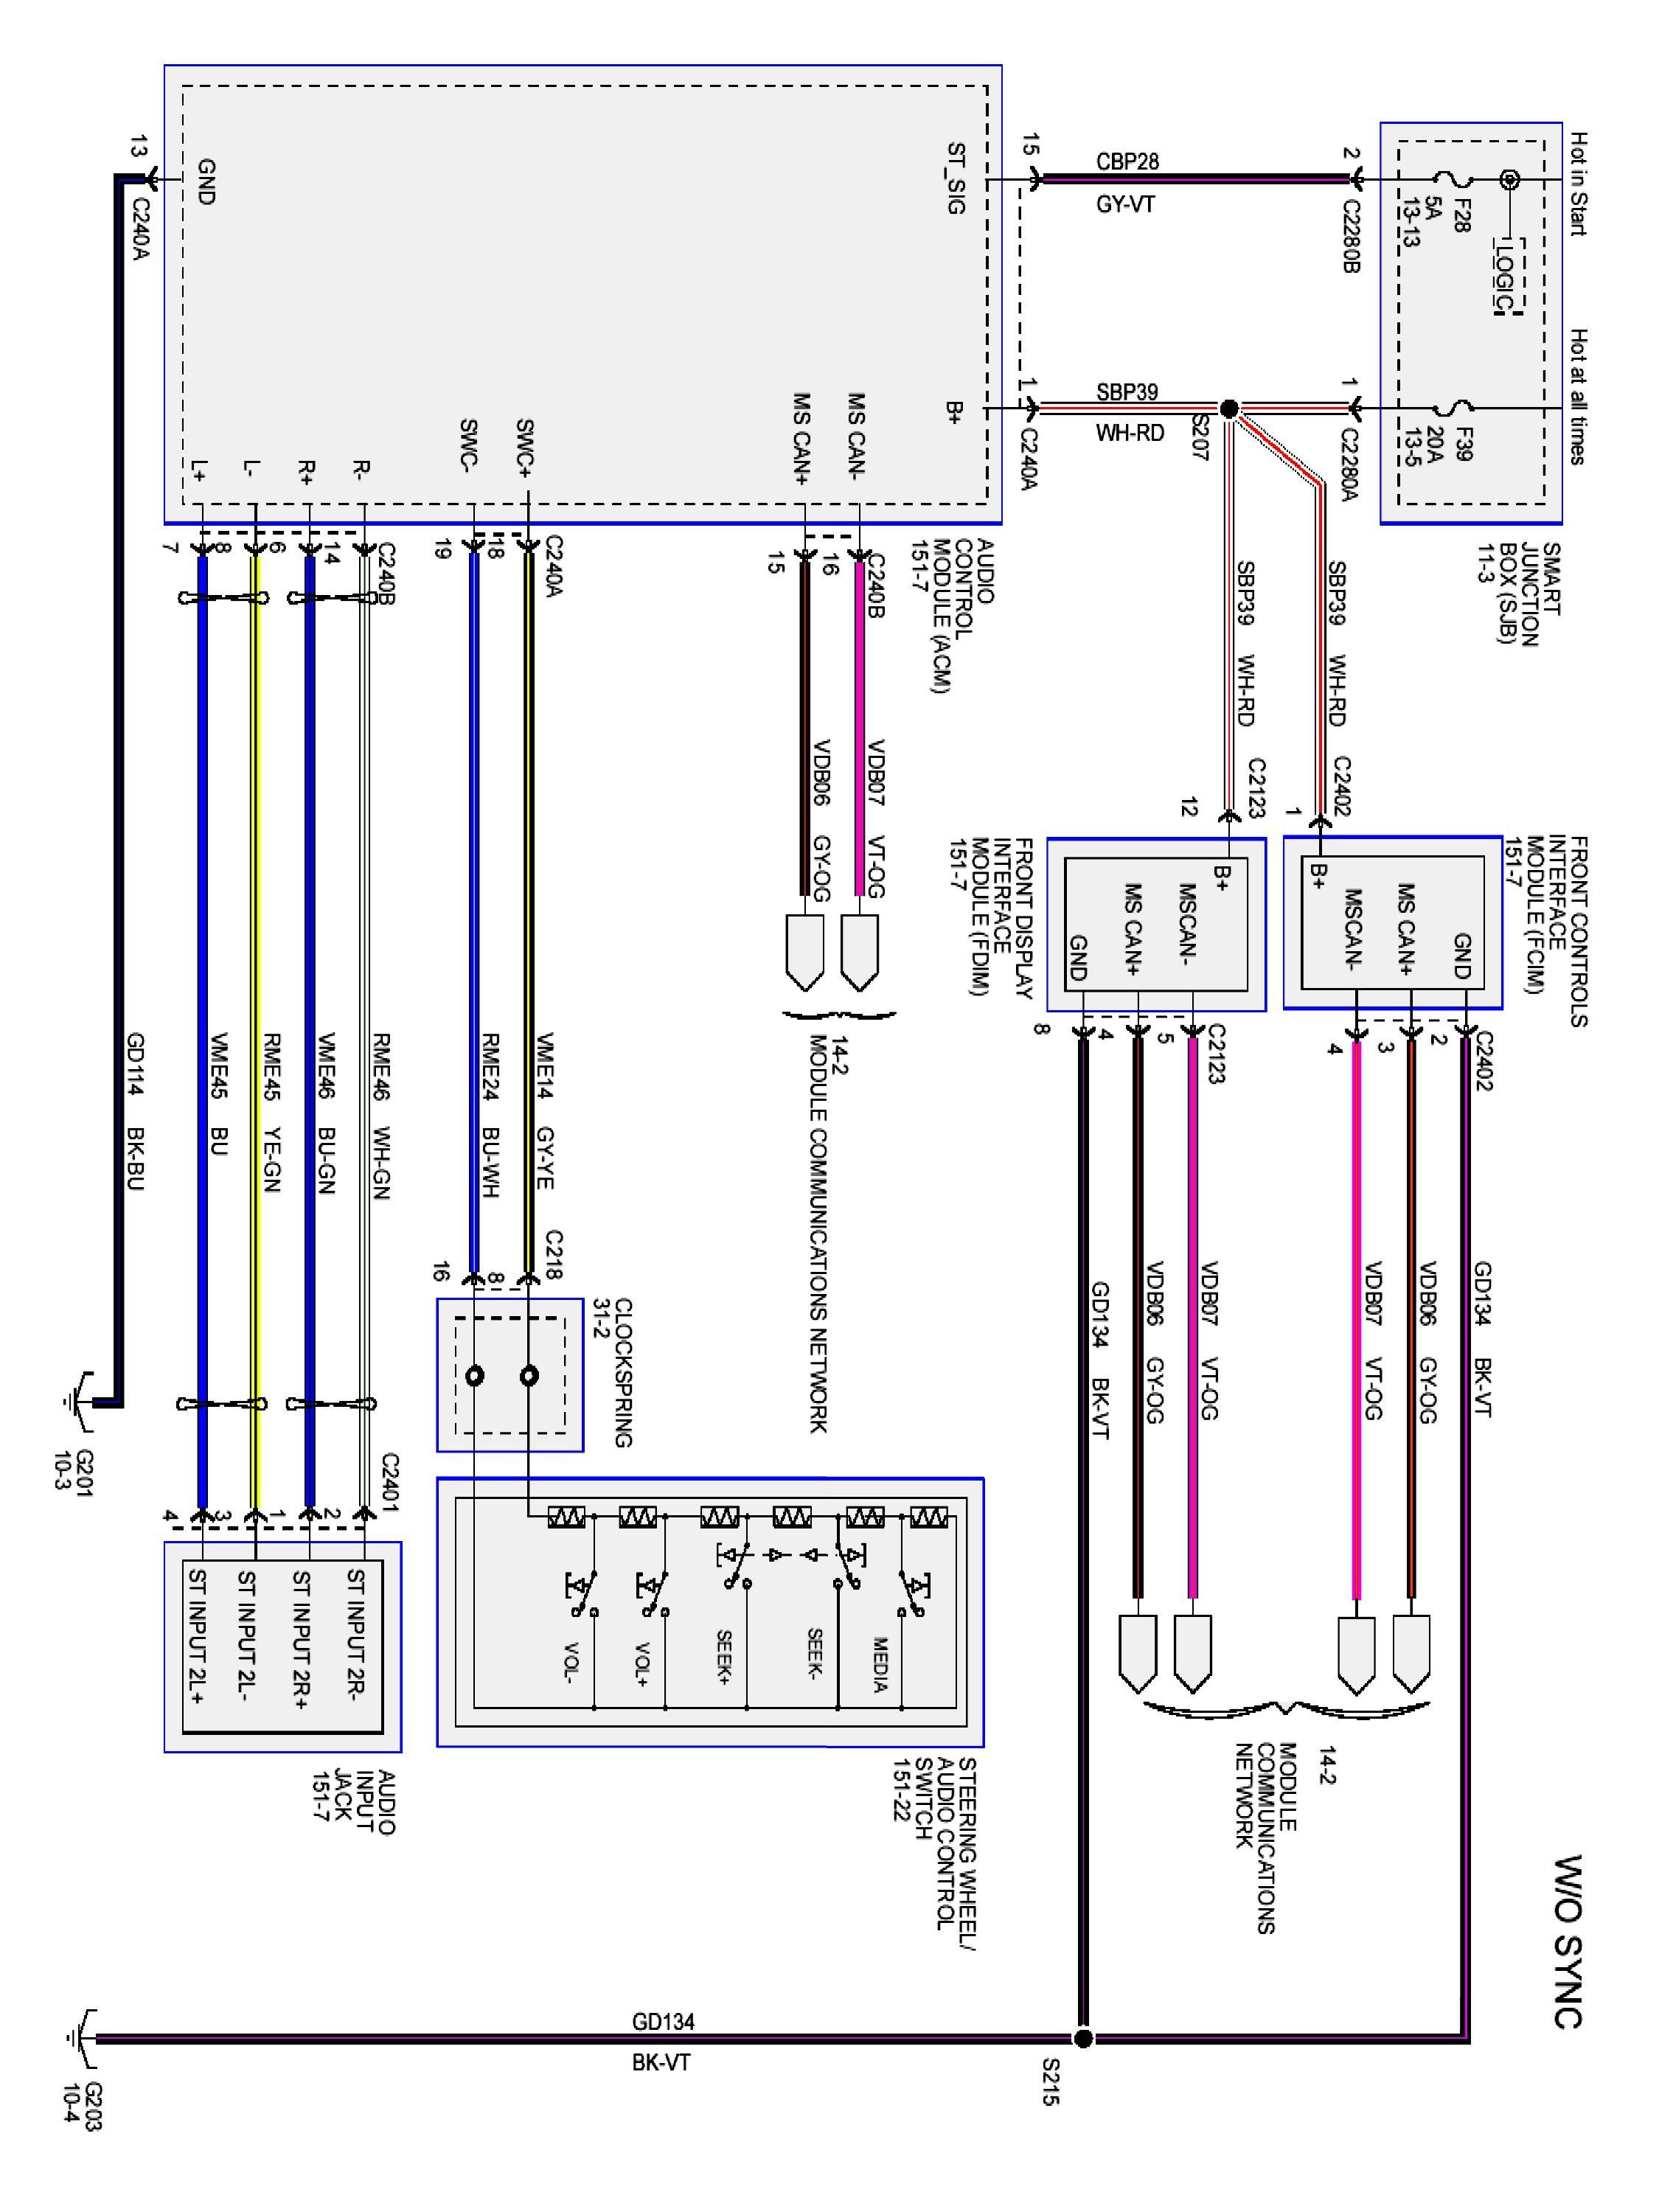 2003 Mitsubishi Wiring Diagram - Wiring Diagram Replace bear-activity -  bear-activity.miramontiseo.it | 2003 Mitsubishi Galant Wiring Diagram Radio |  | bear-activity.miramontiseo.it